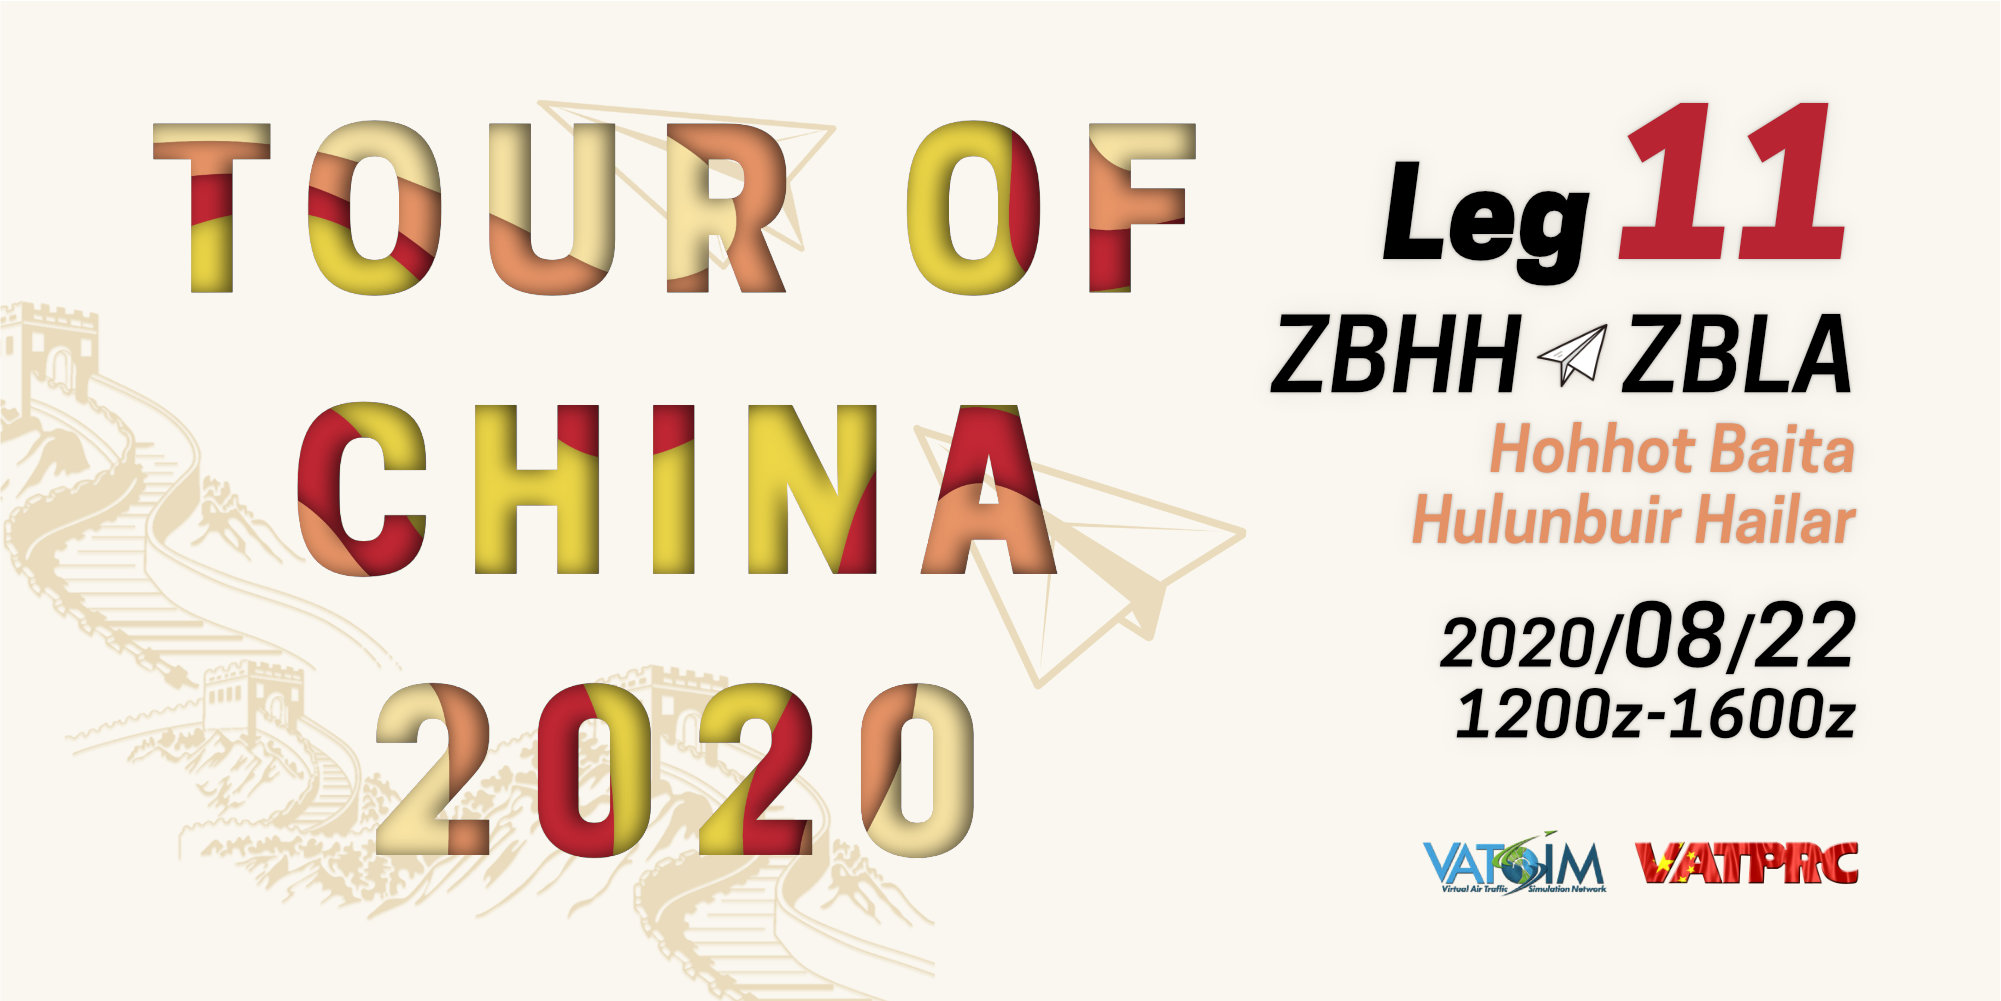 [2020-08-22] Tour Of China 2020 Leg 11 | Hohhot – Hulunbuir